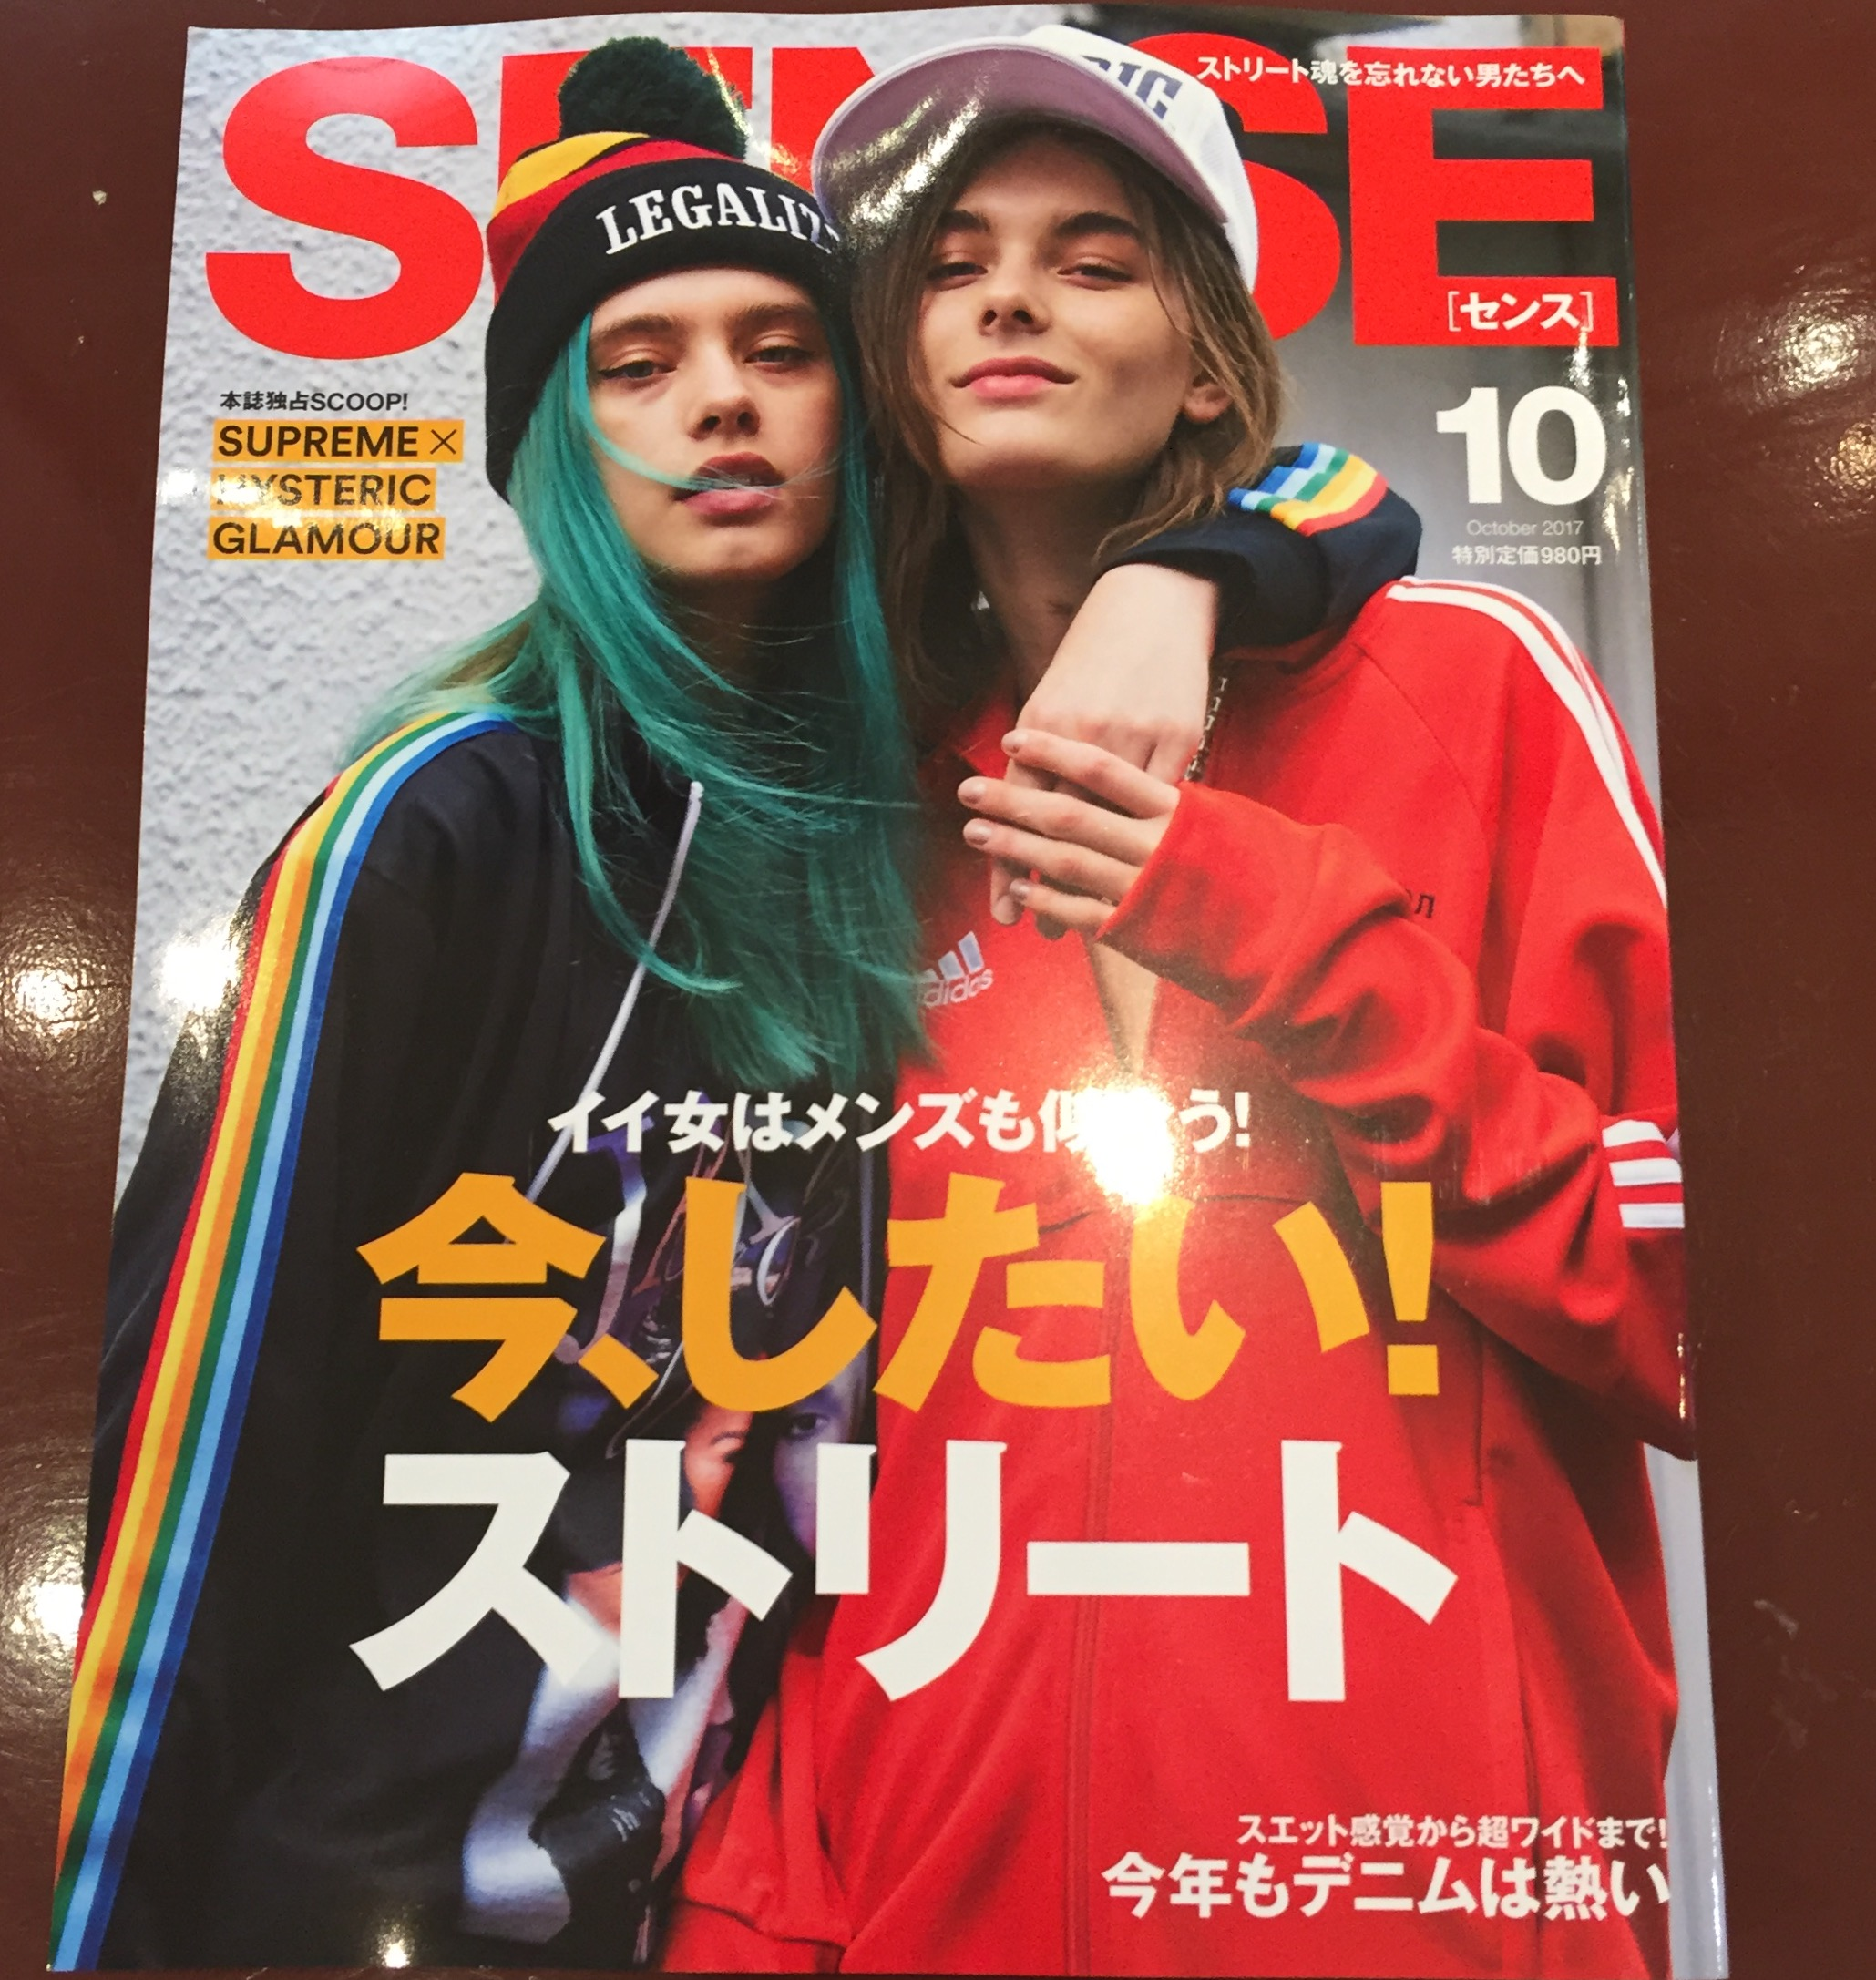 supreme-hysteric-glamour-2017aw-fall-winter-collaboration-collection